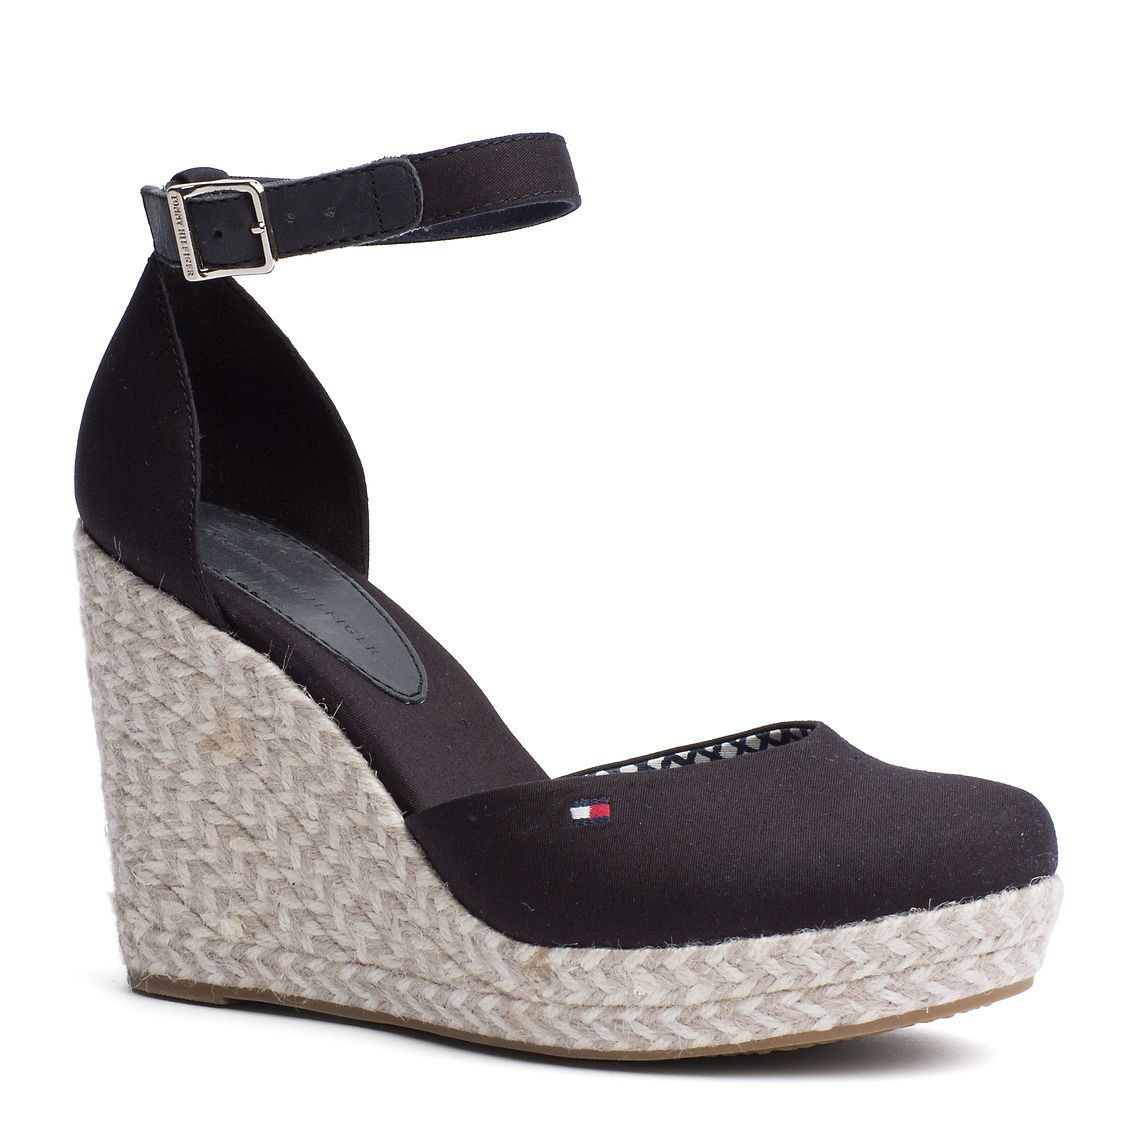 25770567bc30a Tommy Hilfiger wedge - Emery black espadrille   clothes   Pinterest ...